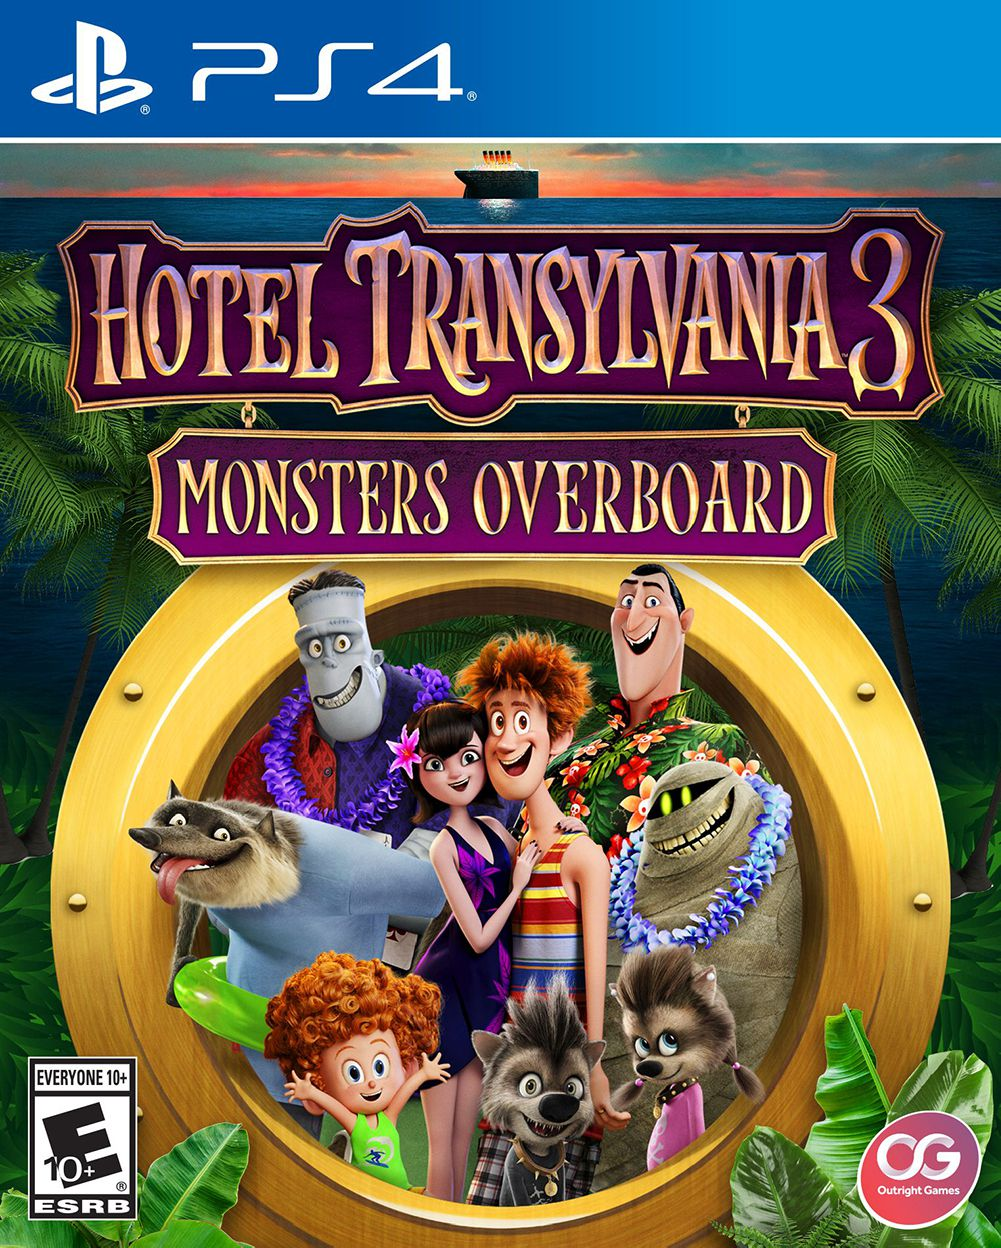 [PC]Hotel Transylvania 3: Monsters Overboard